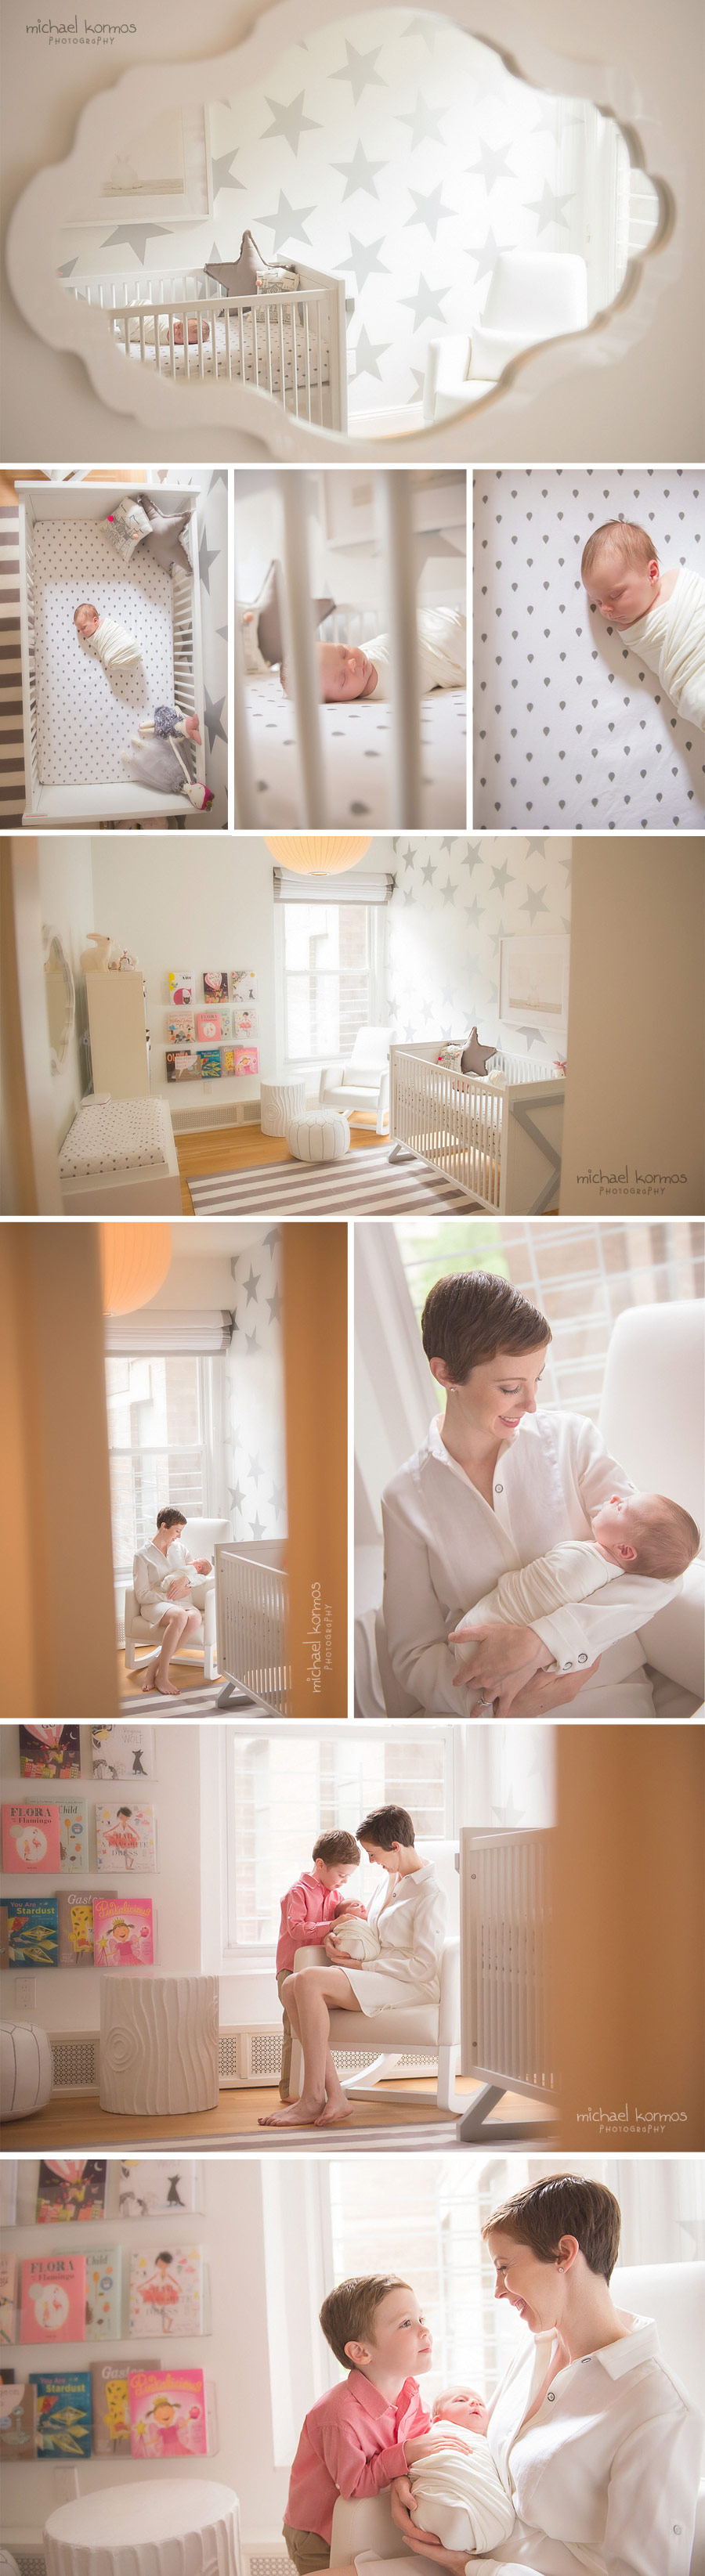 nyc home lifestyle newborn photo shoot